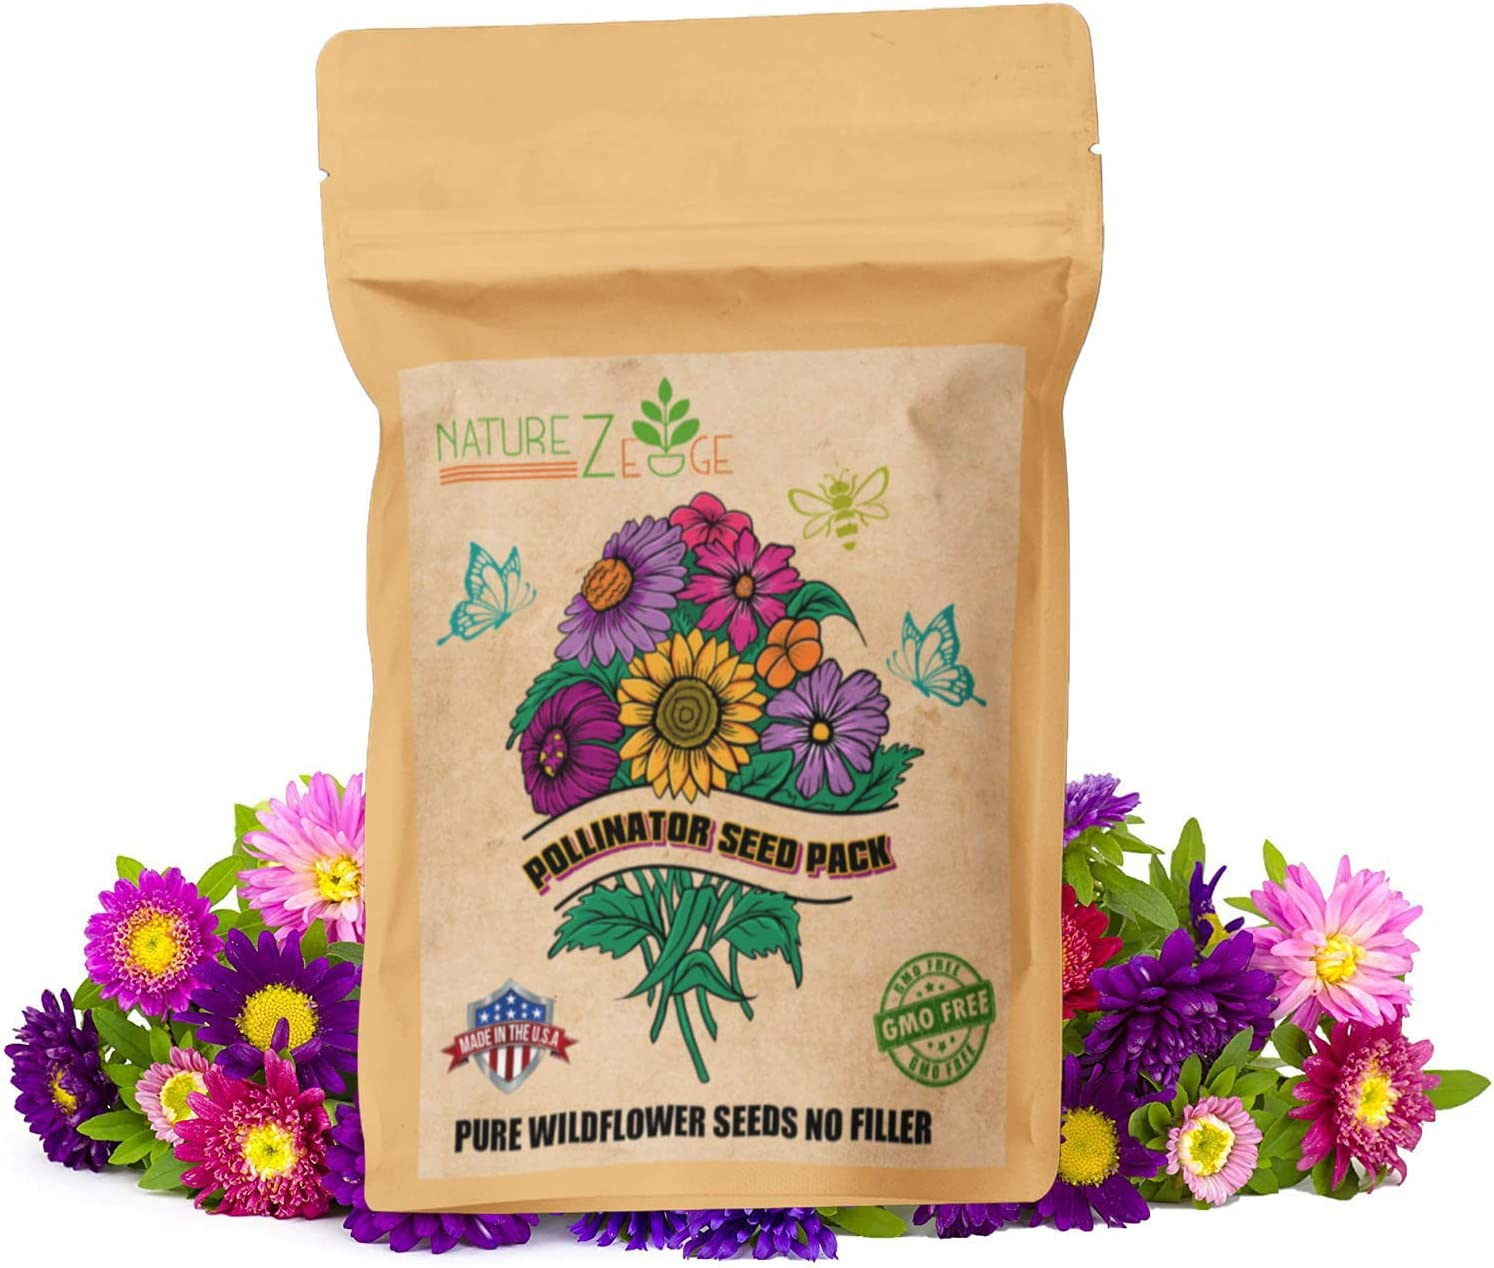 Wildflower Seeds, 35 Varieties of Flower Seeds, Mix of Annual and Perennial Seeds for Planting, Attract Butterflies and Hummingbirds, Non-GMO